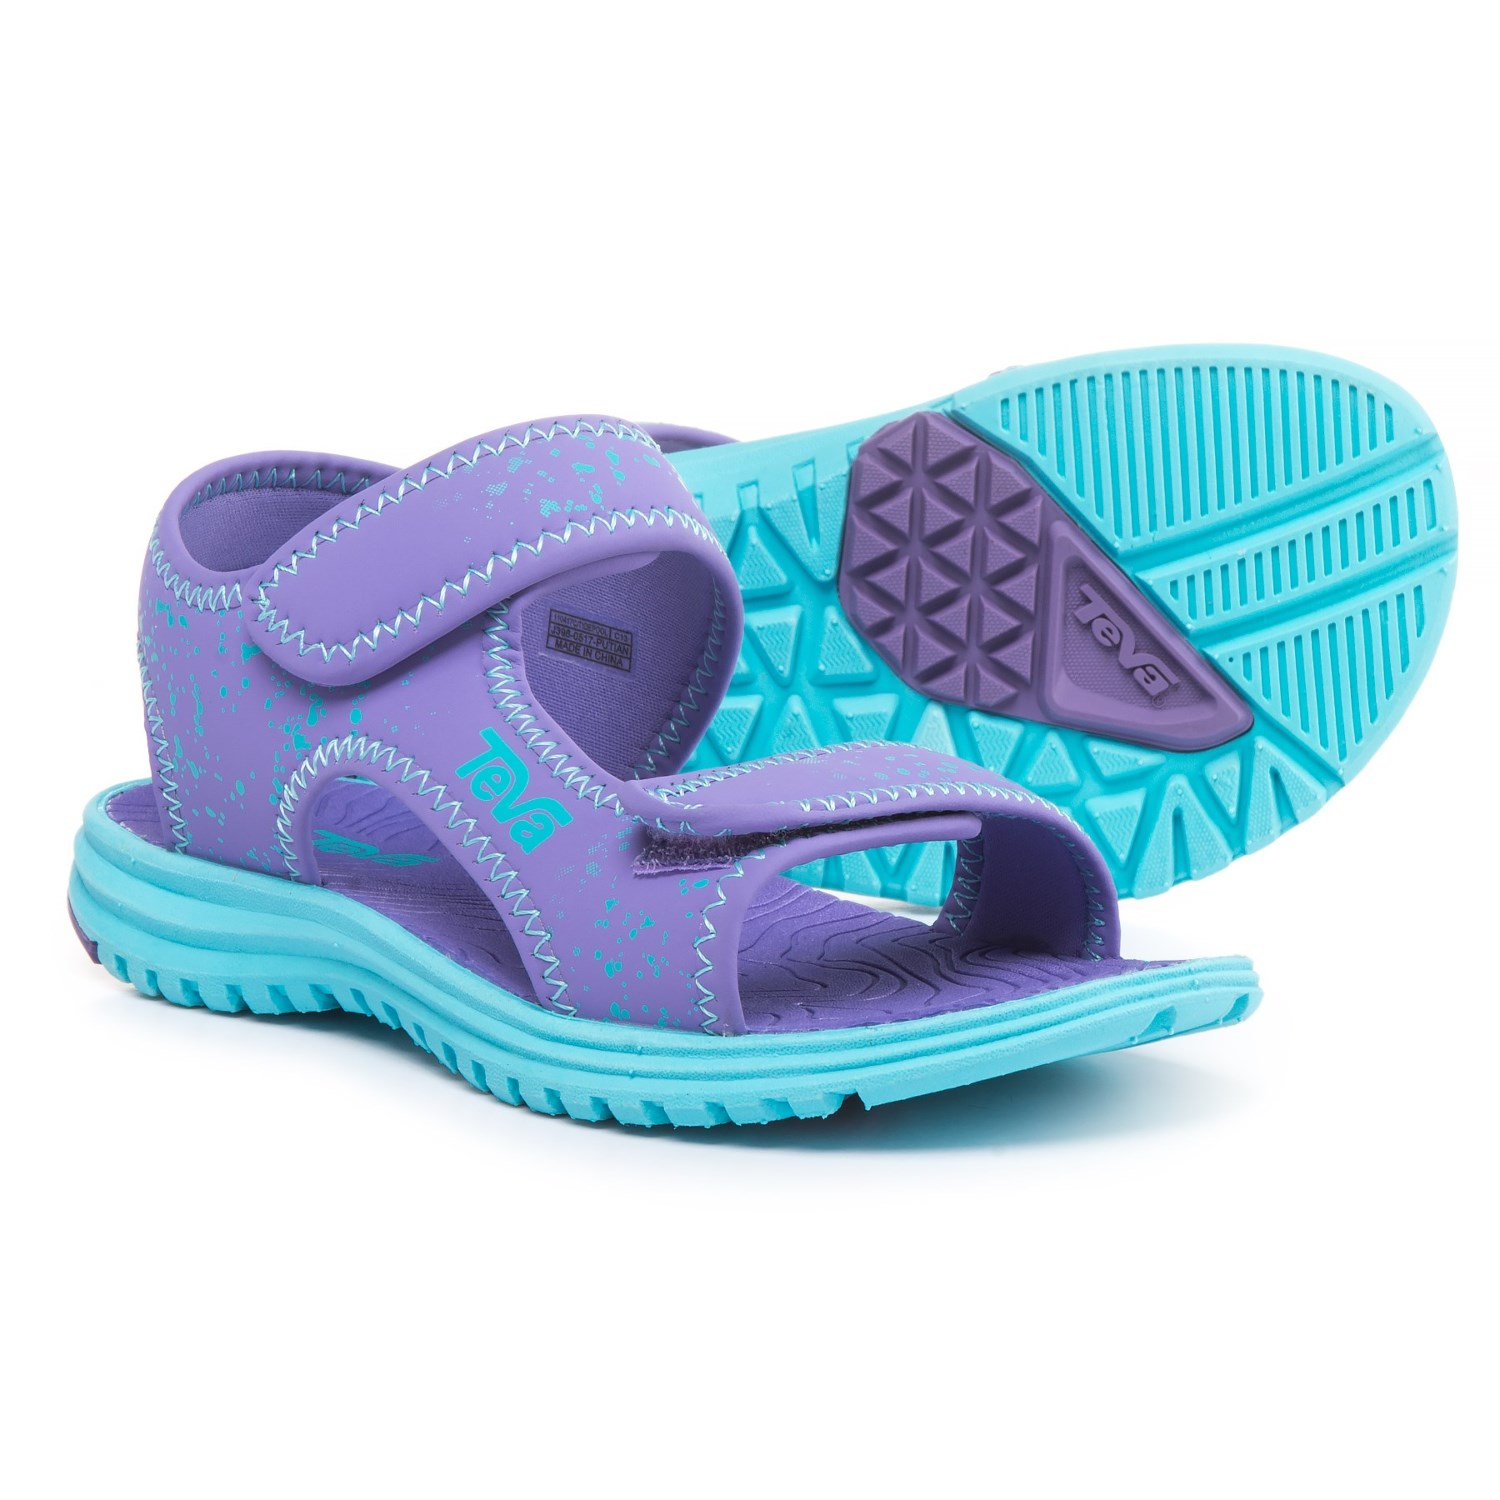 d177d2bc4af7 Teva Tidepool Sport Sandals (For Girls) in Purple Scuba Splatter ...